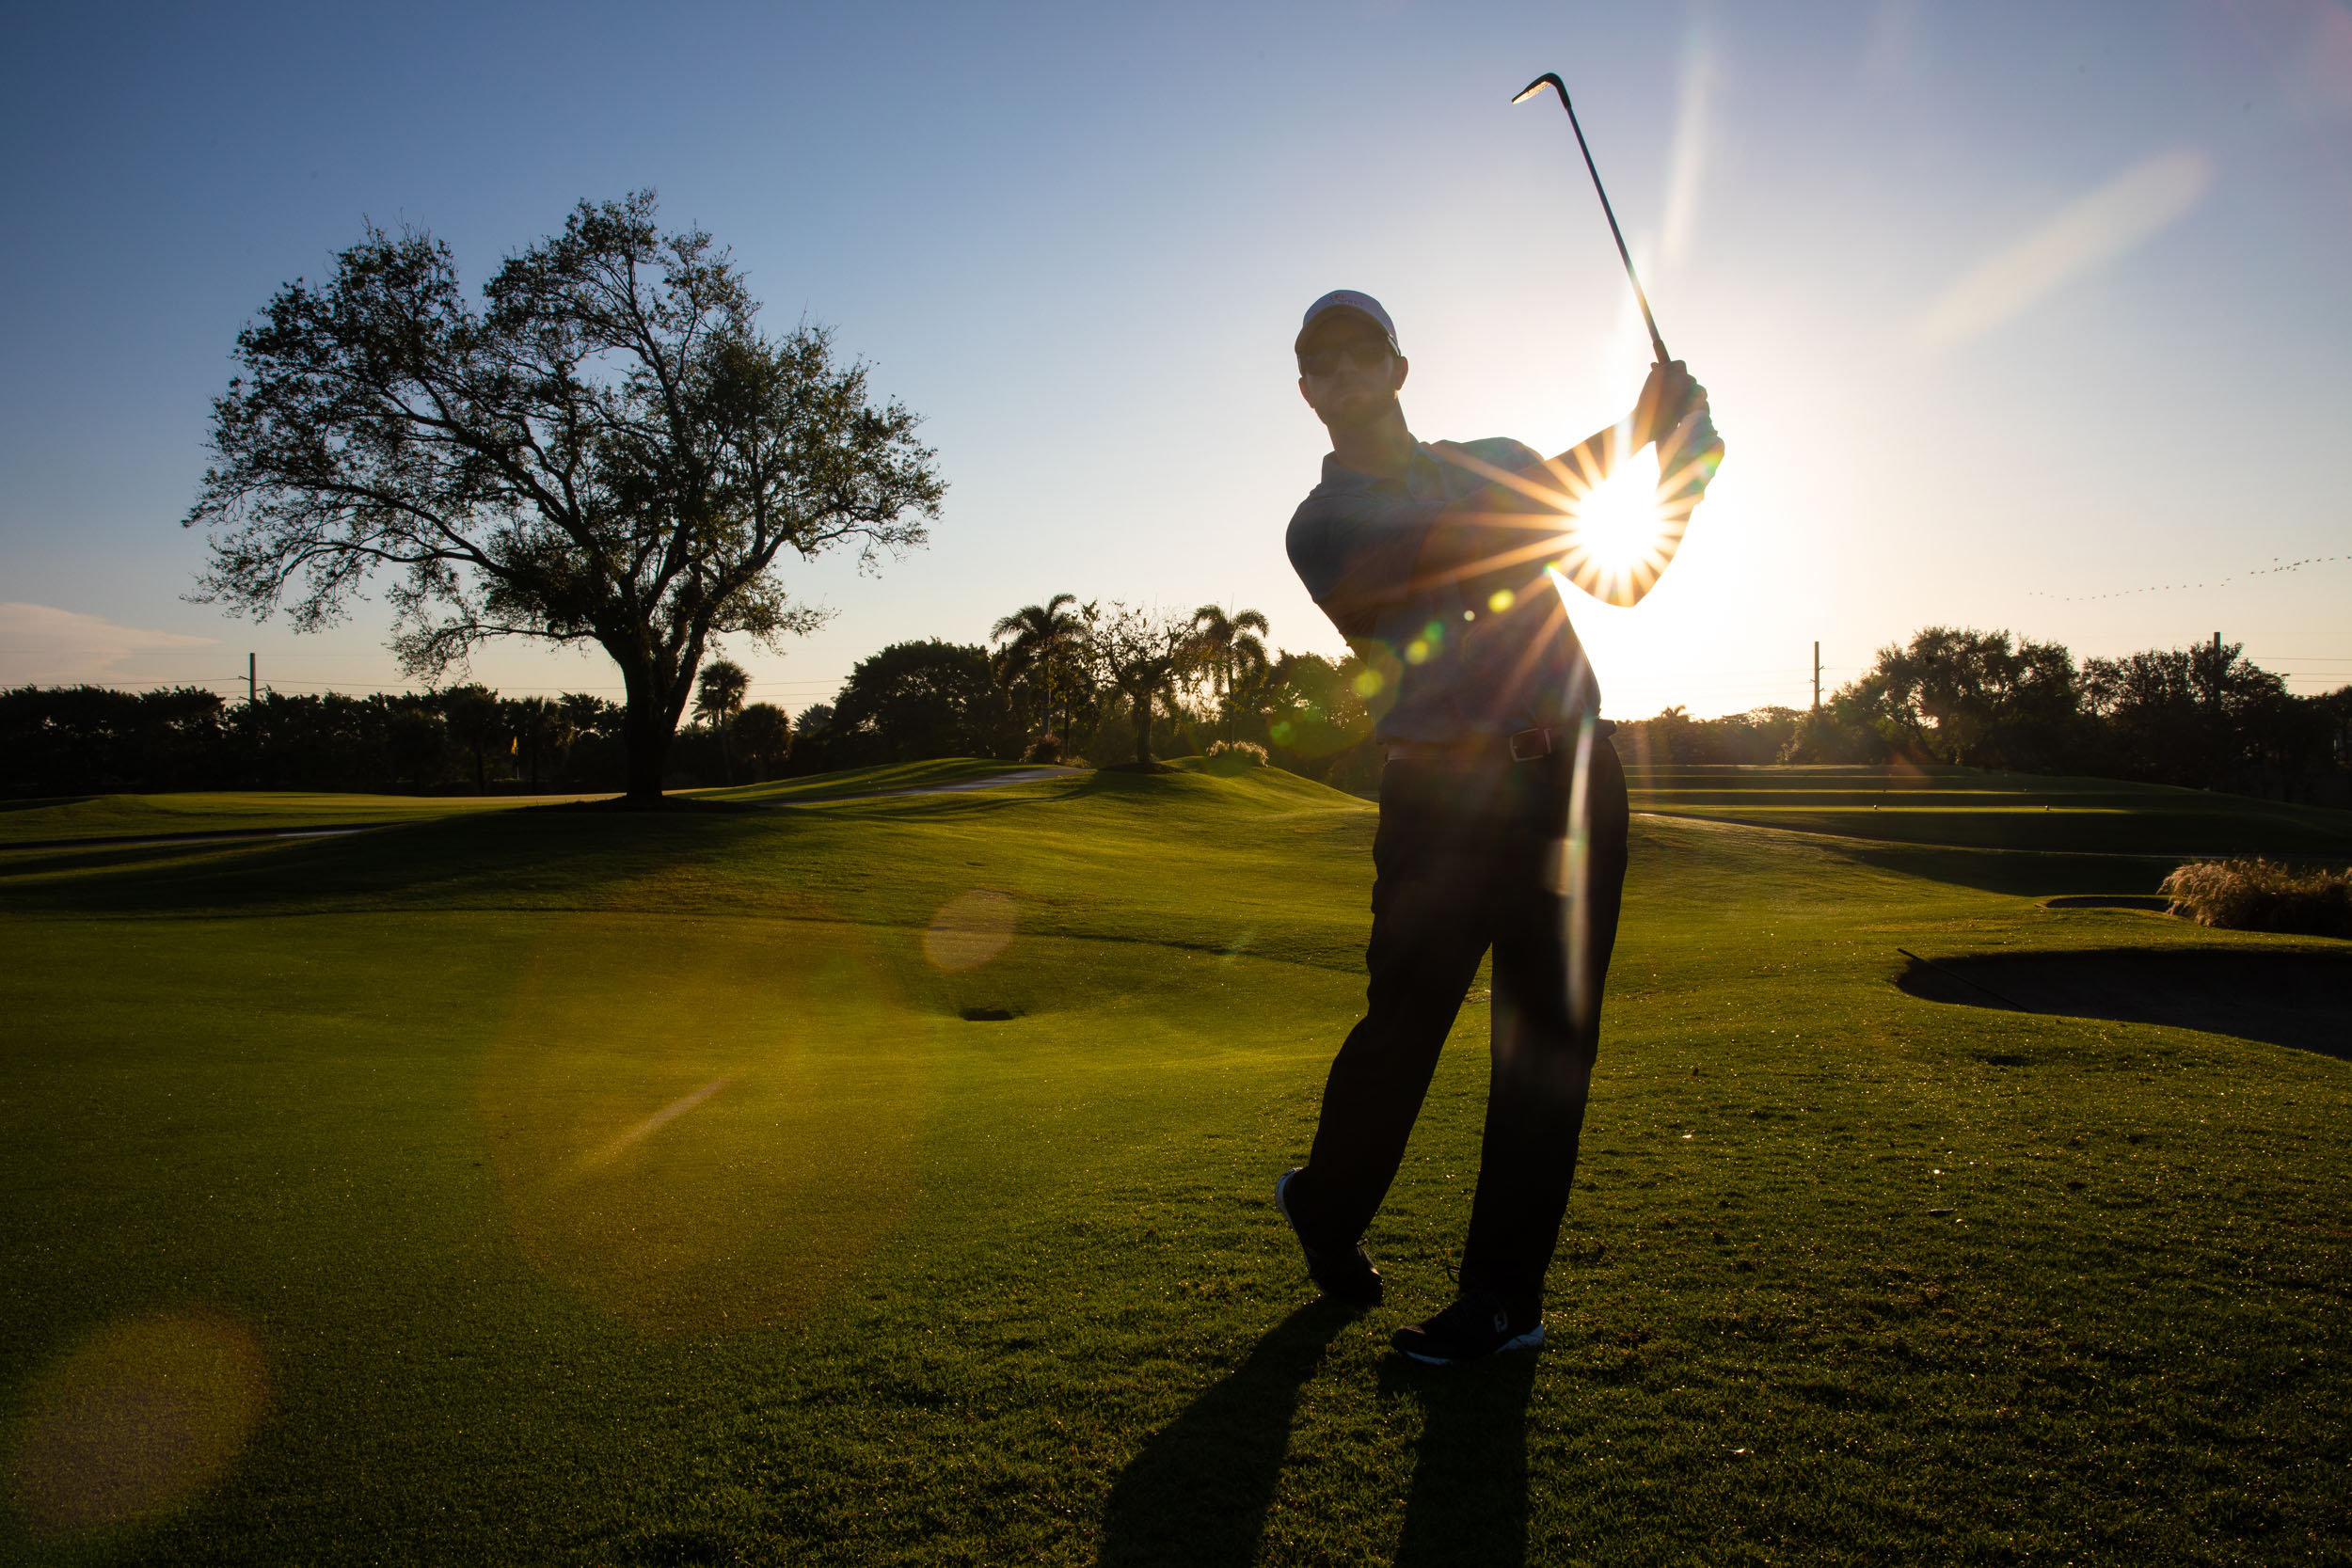 Florida Photography | golfing at sunrise | Steven Martine